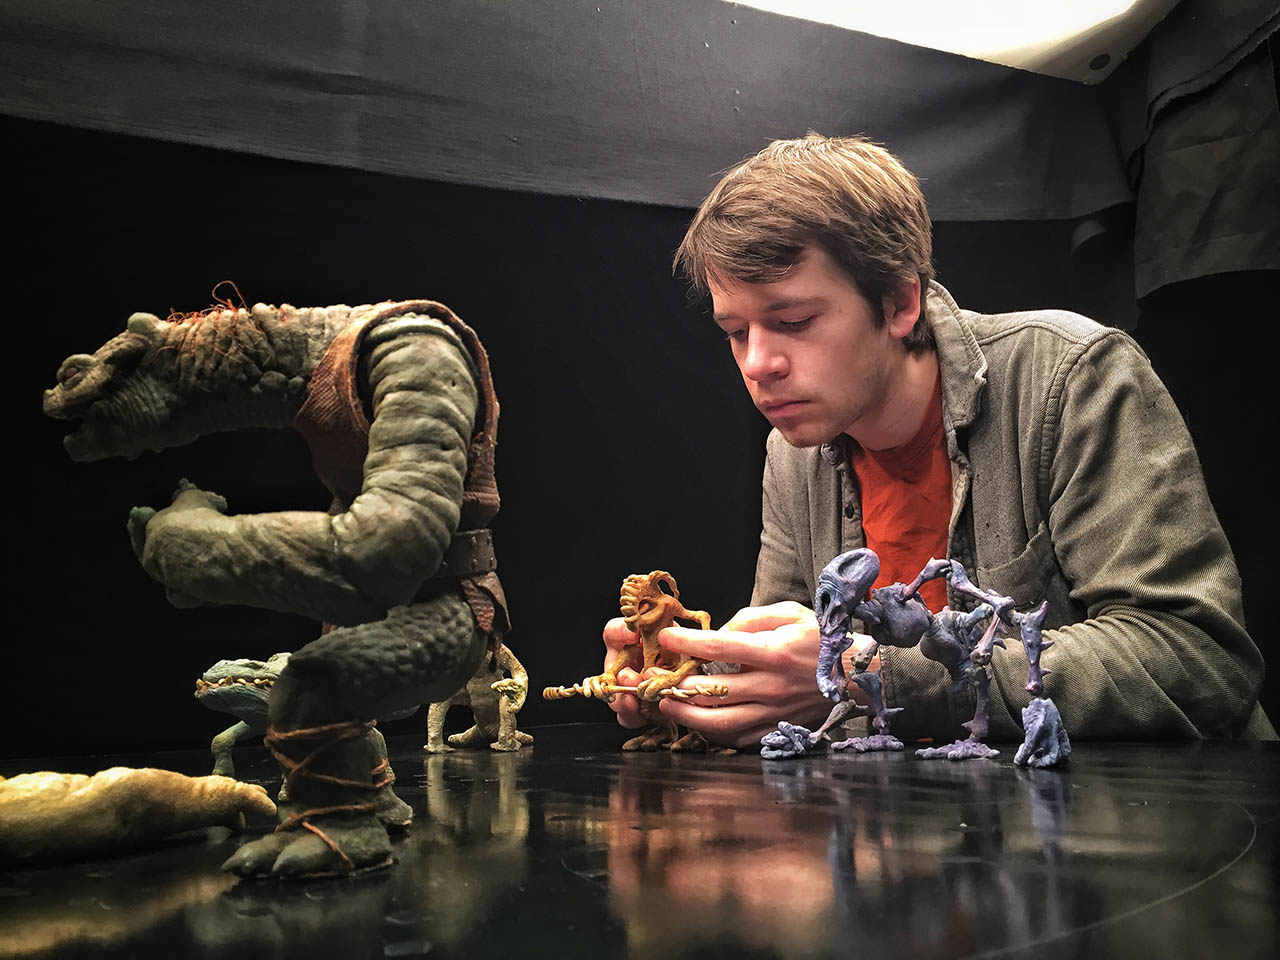 David Lauer, of Tippett Studio, works on the holochess set.